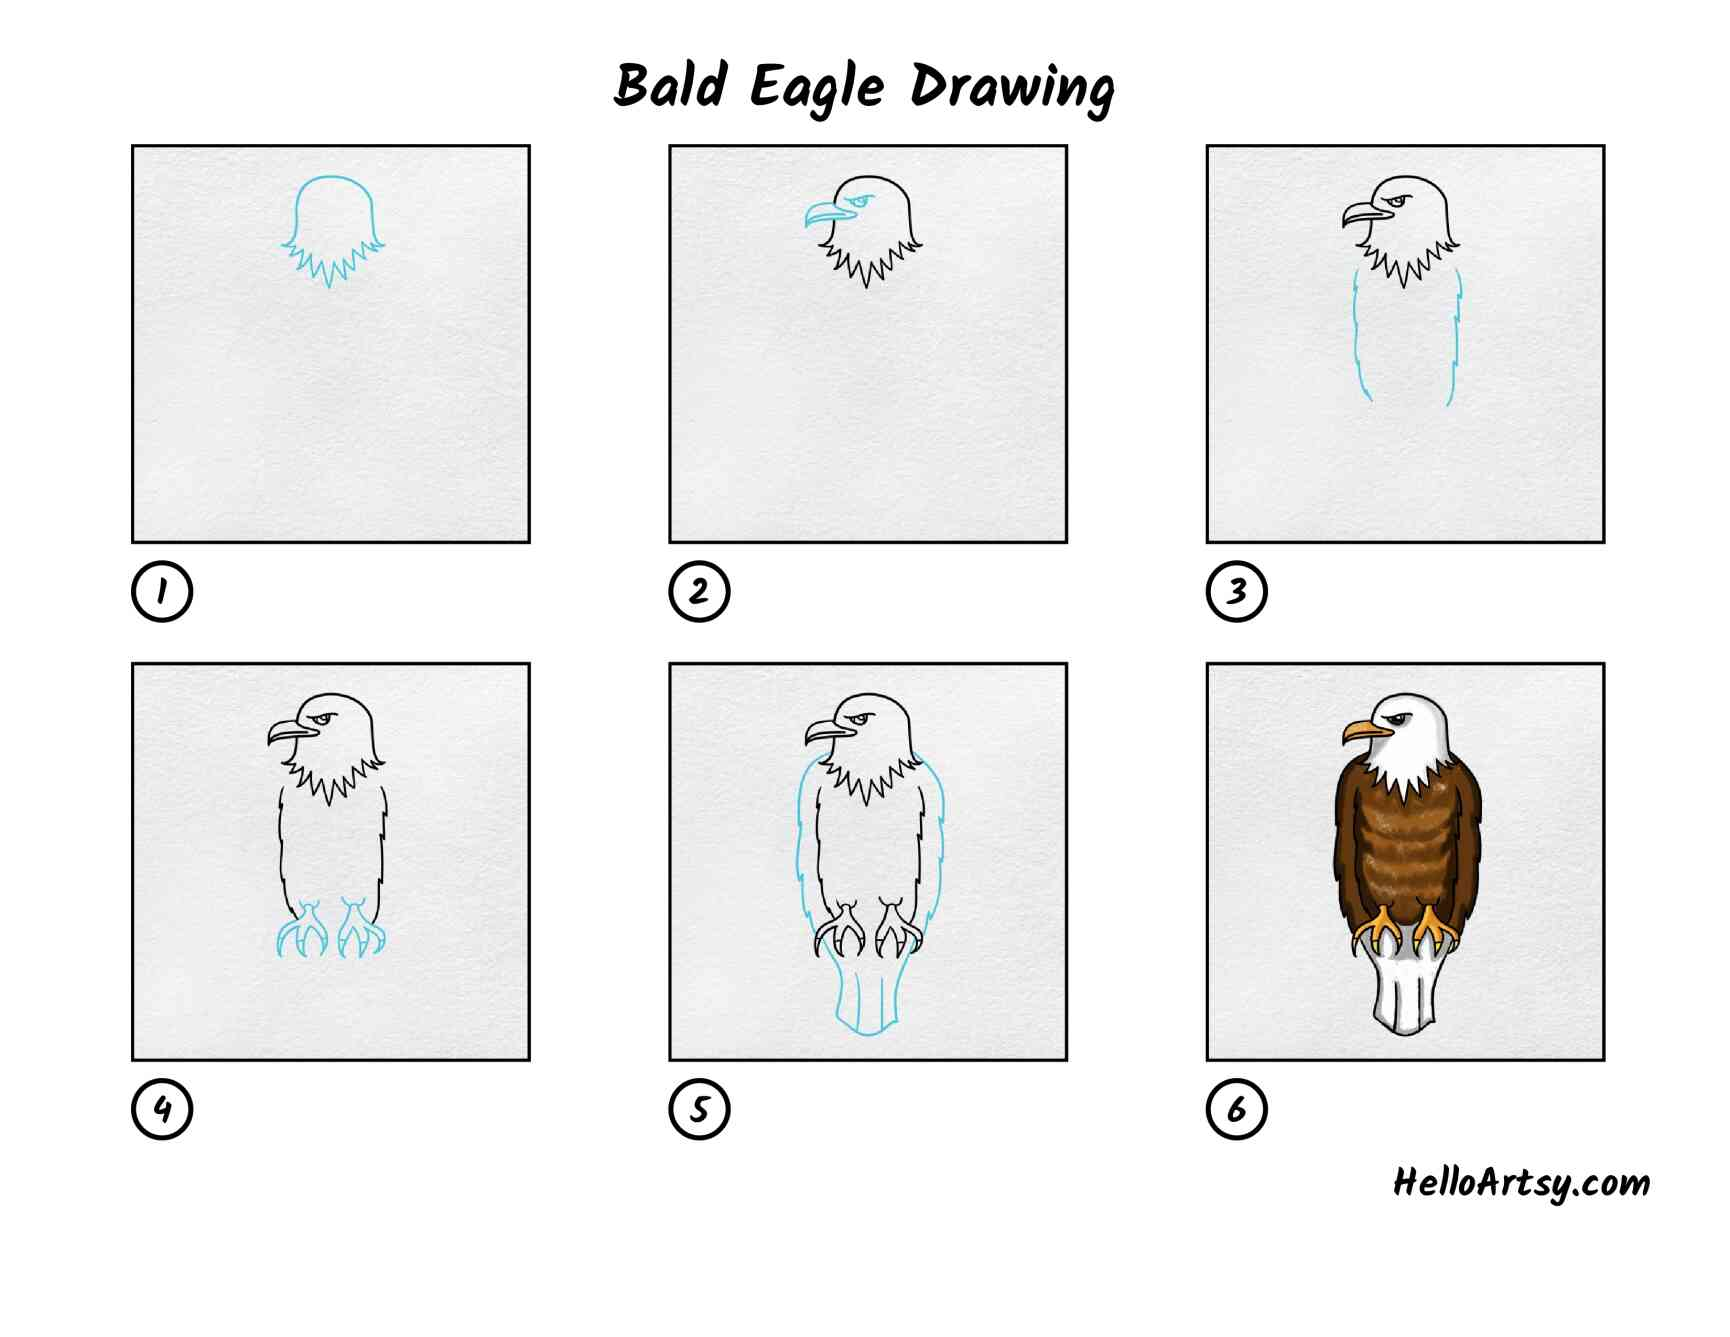 Bald Eagle Drawing: All Steps